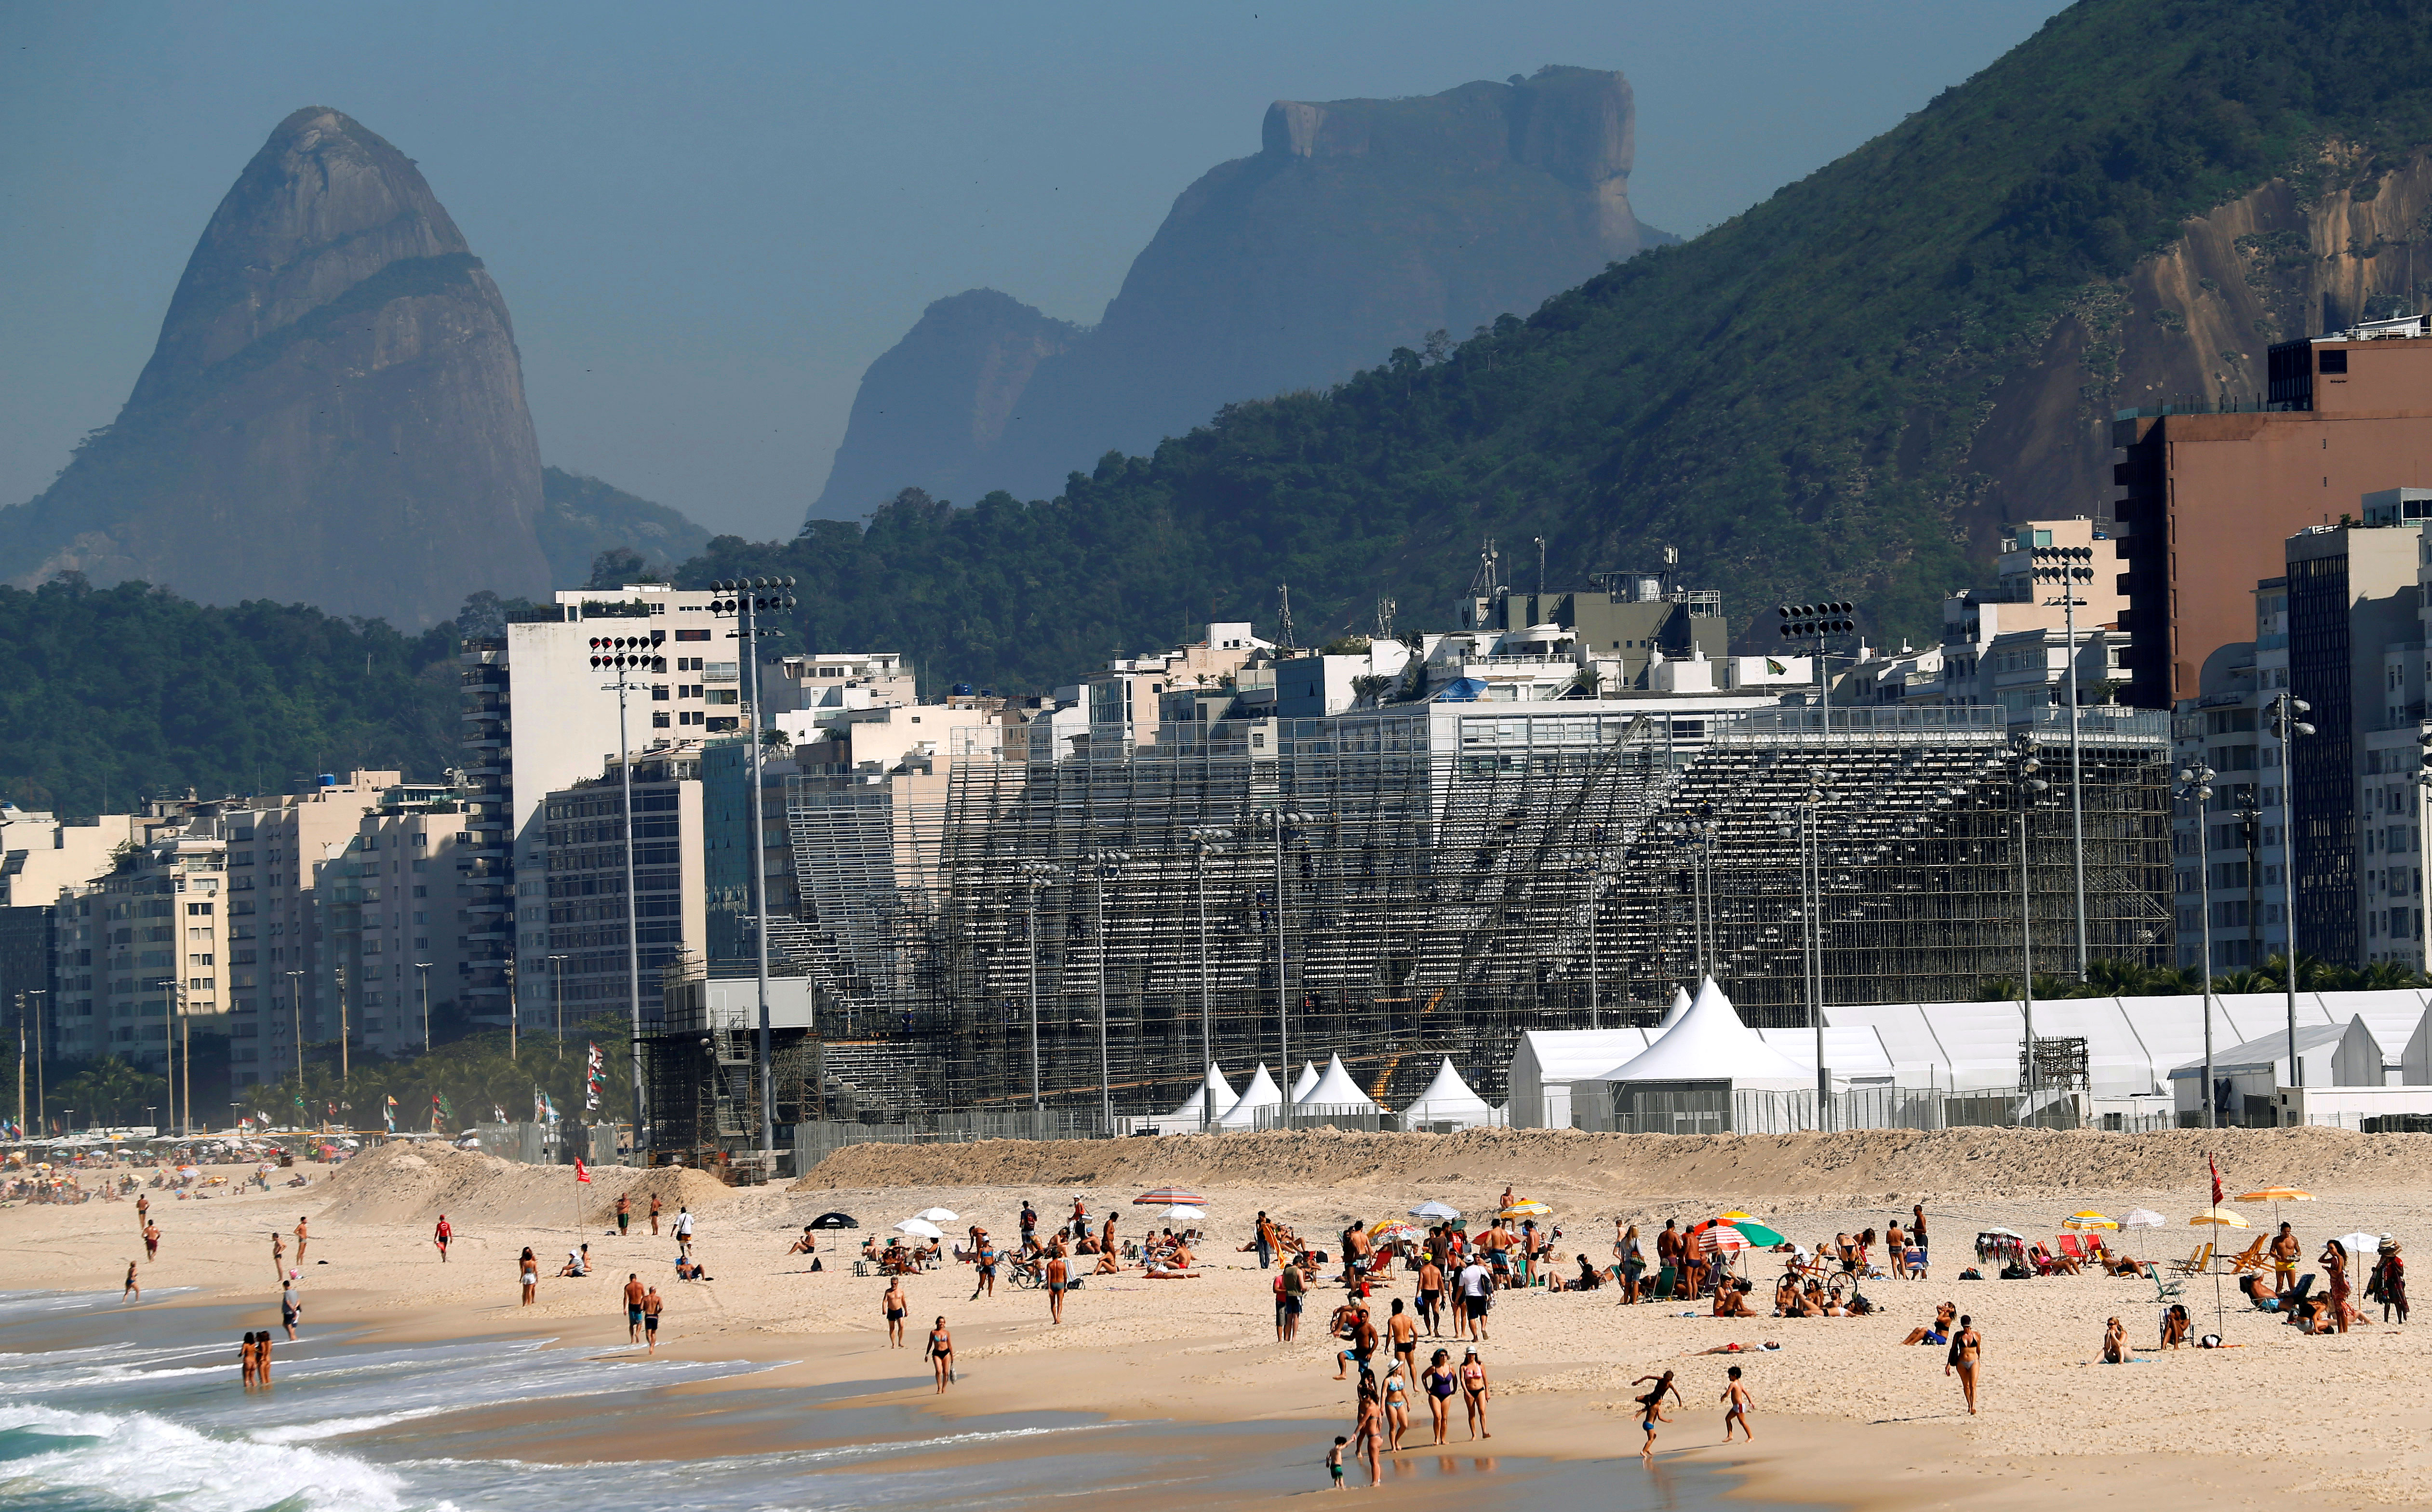 A view of the construction site of the beach volleyball venue for 2016 Rio Olympics on Copacabana beach in Rio de Janeiro